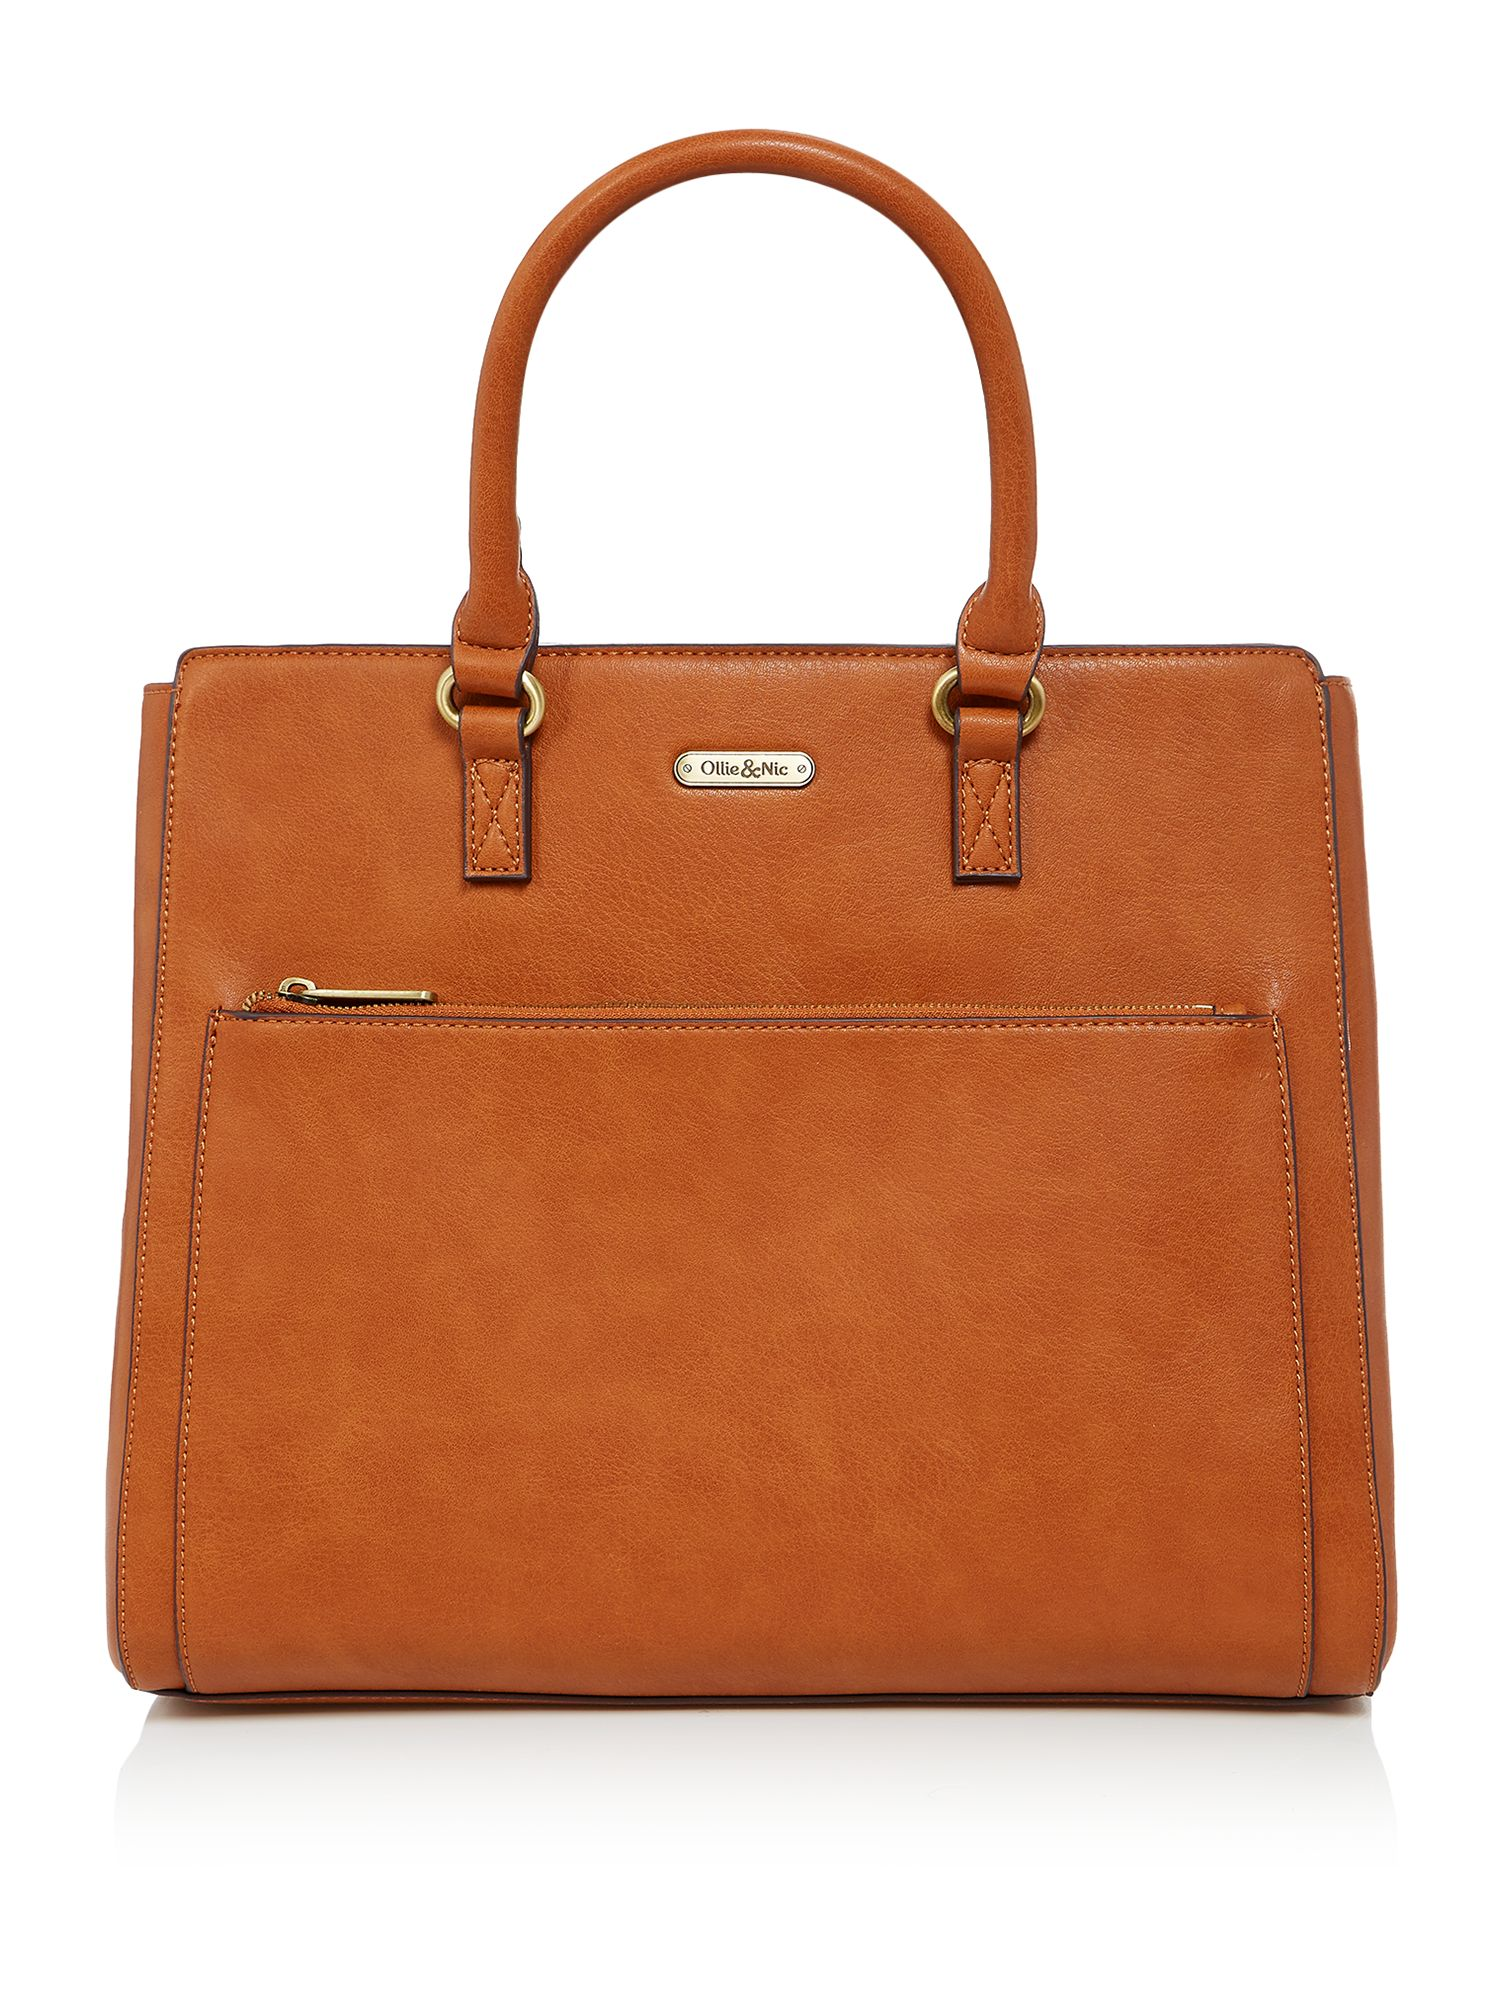 Ollie & Nic Patsy Work Tote, Tan